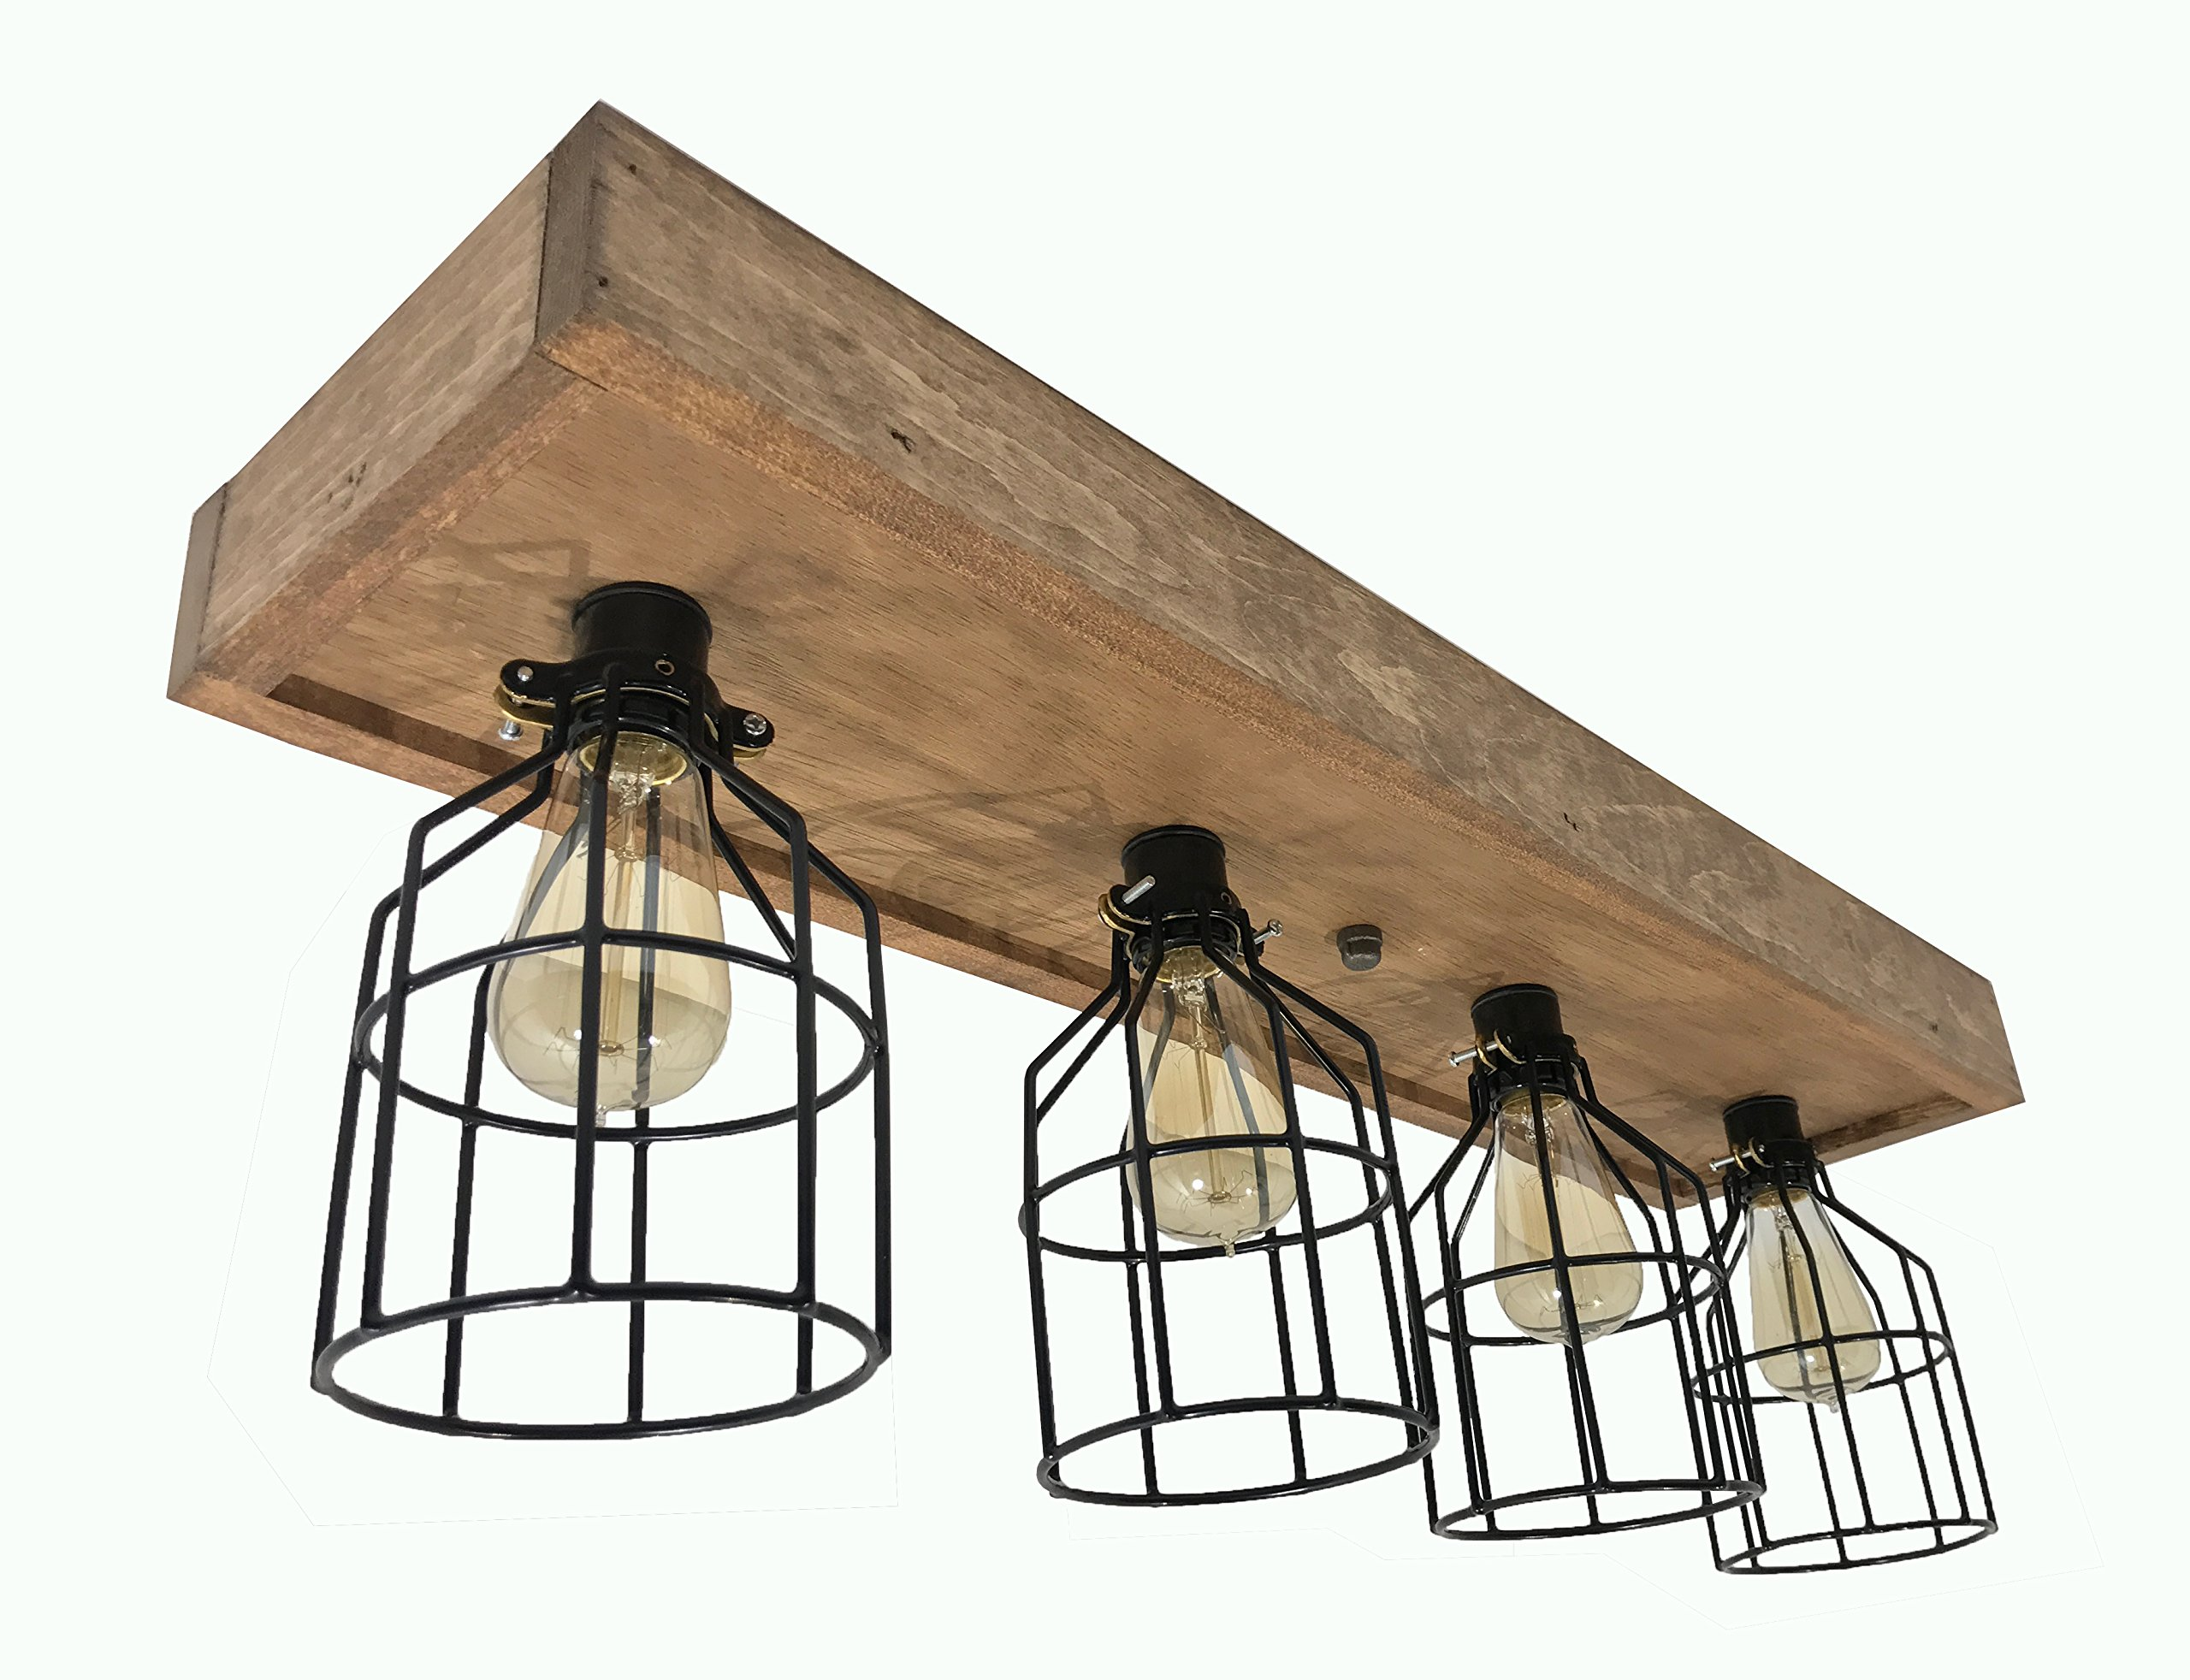 Flush Mount Farmhouse Style Light Fixture - Real Wood Chandelier Light Made in USA - Rustic Design For Kitchen, Dining Room, Over Island - Vintage Industrial Decor Wooden Lighting (4 Light with Cage)